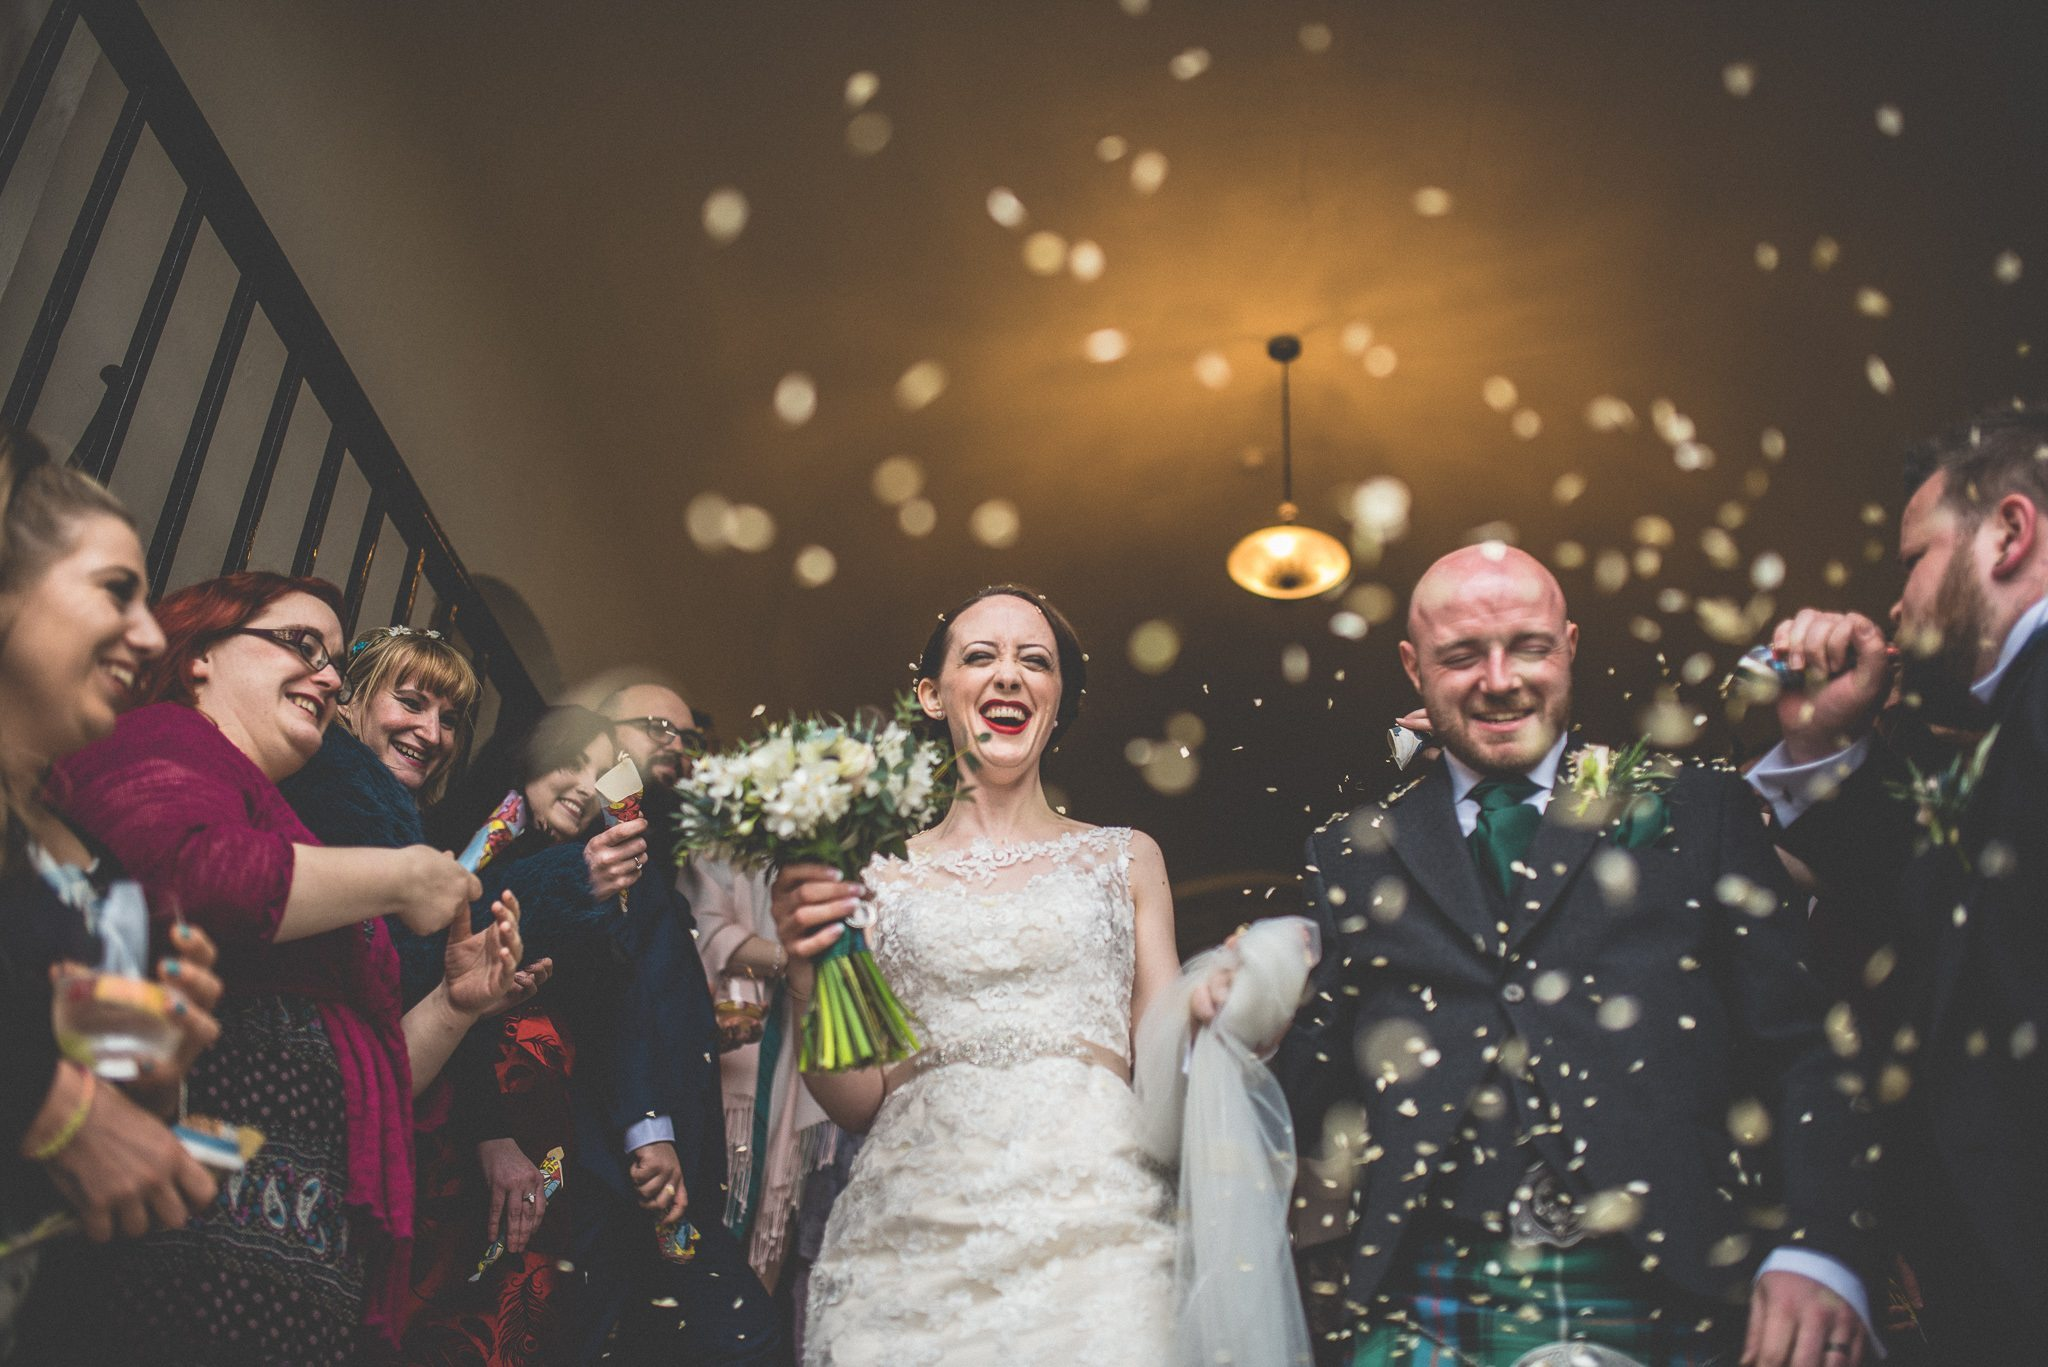 Bride and groom walking through flying confetti at Farnham Castle by Maria Assia Photography